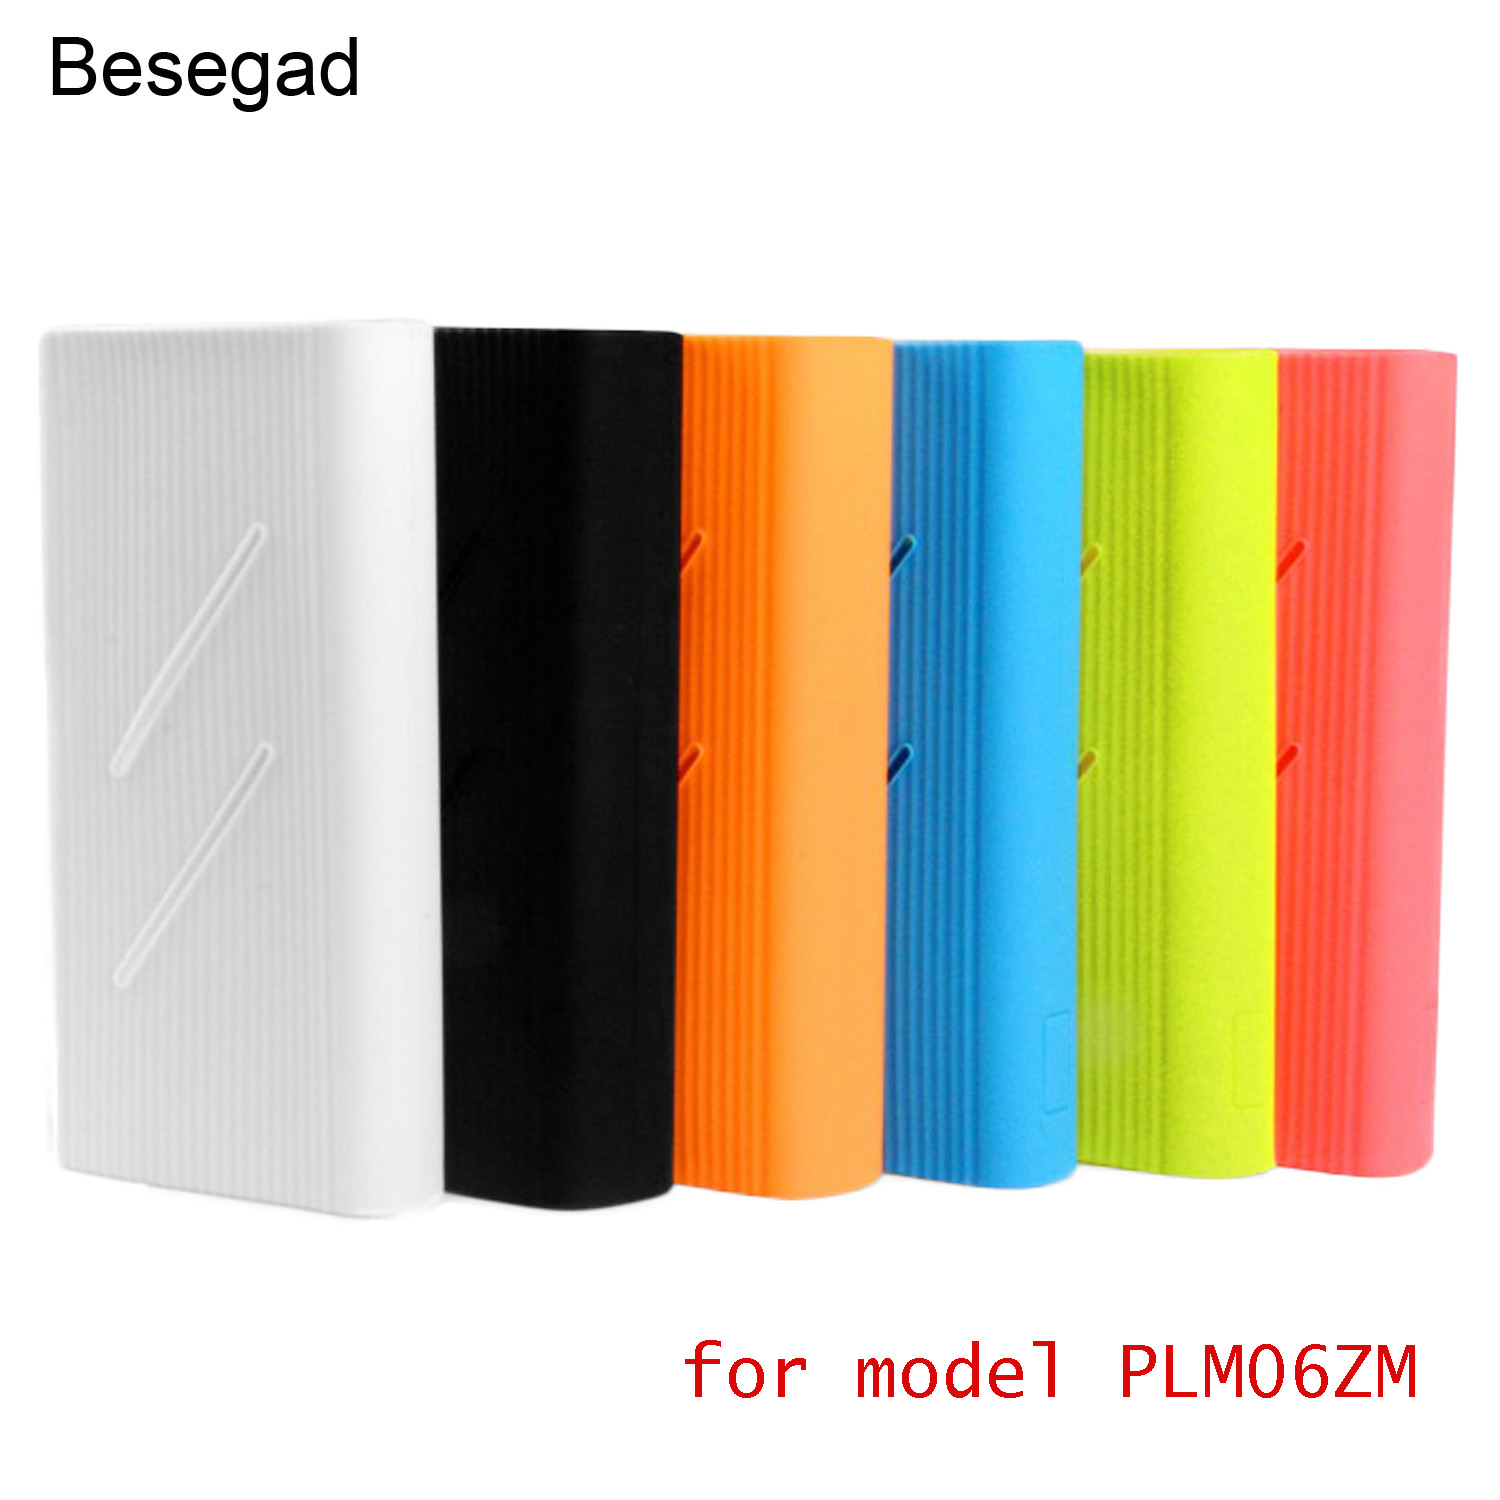 Besegad Soft Rubber Silicone Gel Protection <font><b>Case</b></font> Cover Skin Sleeve Protector for Xiaomi Xiao <font><b>Mi</b></font> <font><b>Power</b></font> <font><b>Bank</b></font> <font><b>2C</b></font> 20000mAh image